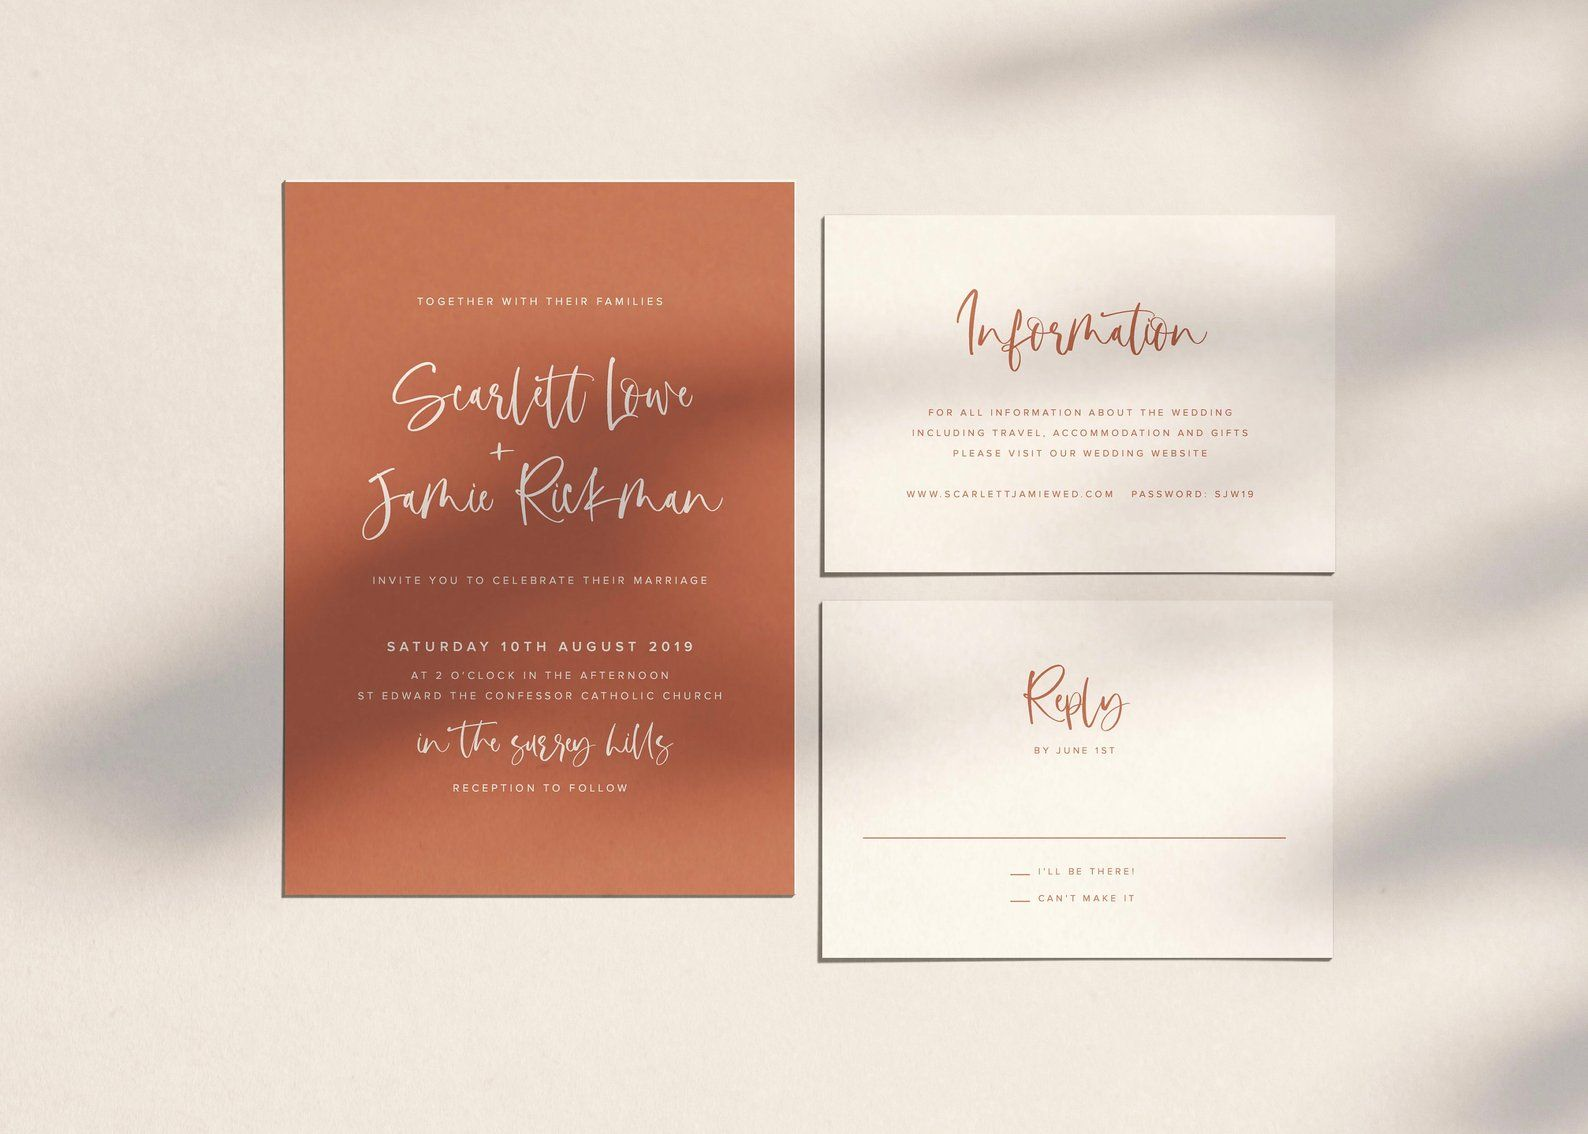 Terracotta Wedding Invitation Orange Wedding Invitation Etsy Orange Wedding Invitations Modern Wedding Invitations Templates Etsy Wedding Invitations